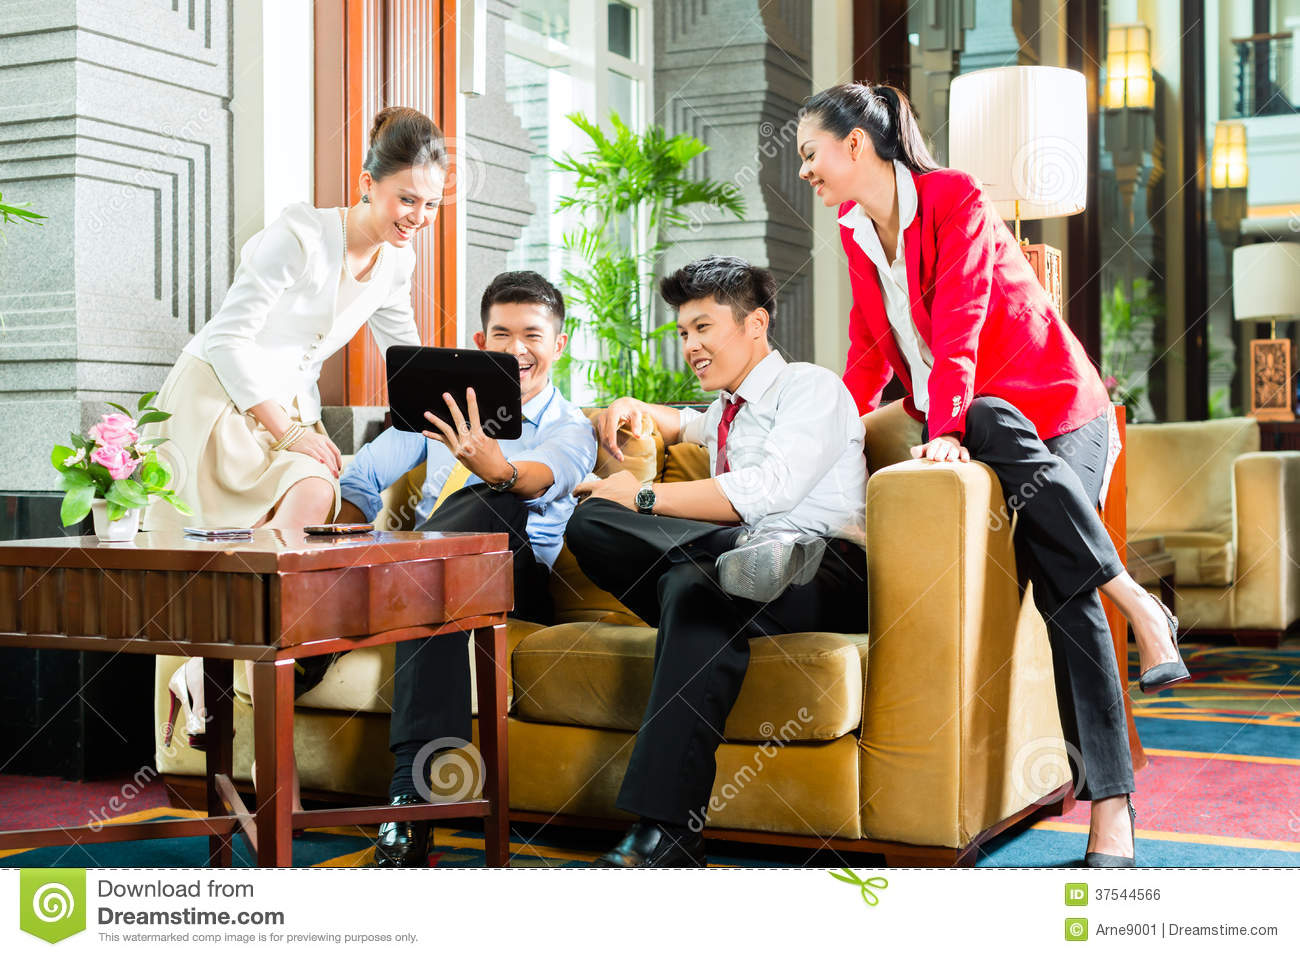 Hotel Lobby Asian Chinese Business People Meeting In Hotel Lobby Stock Photo